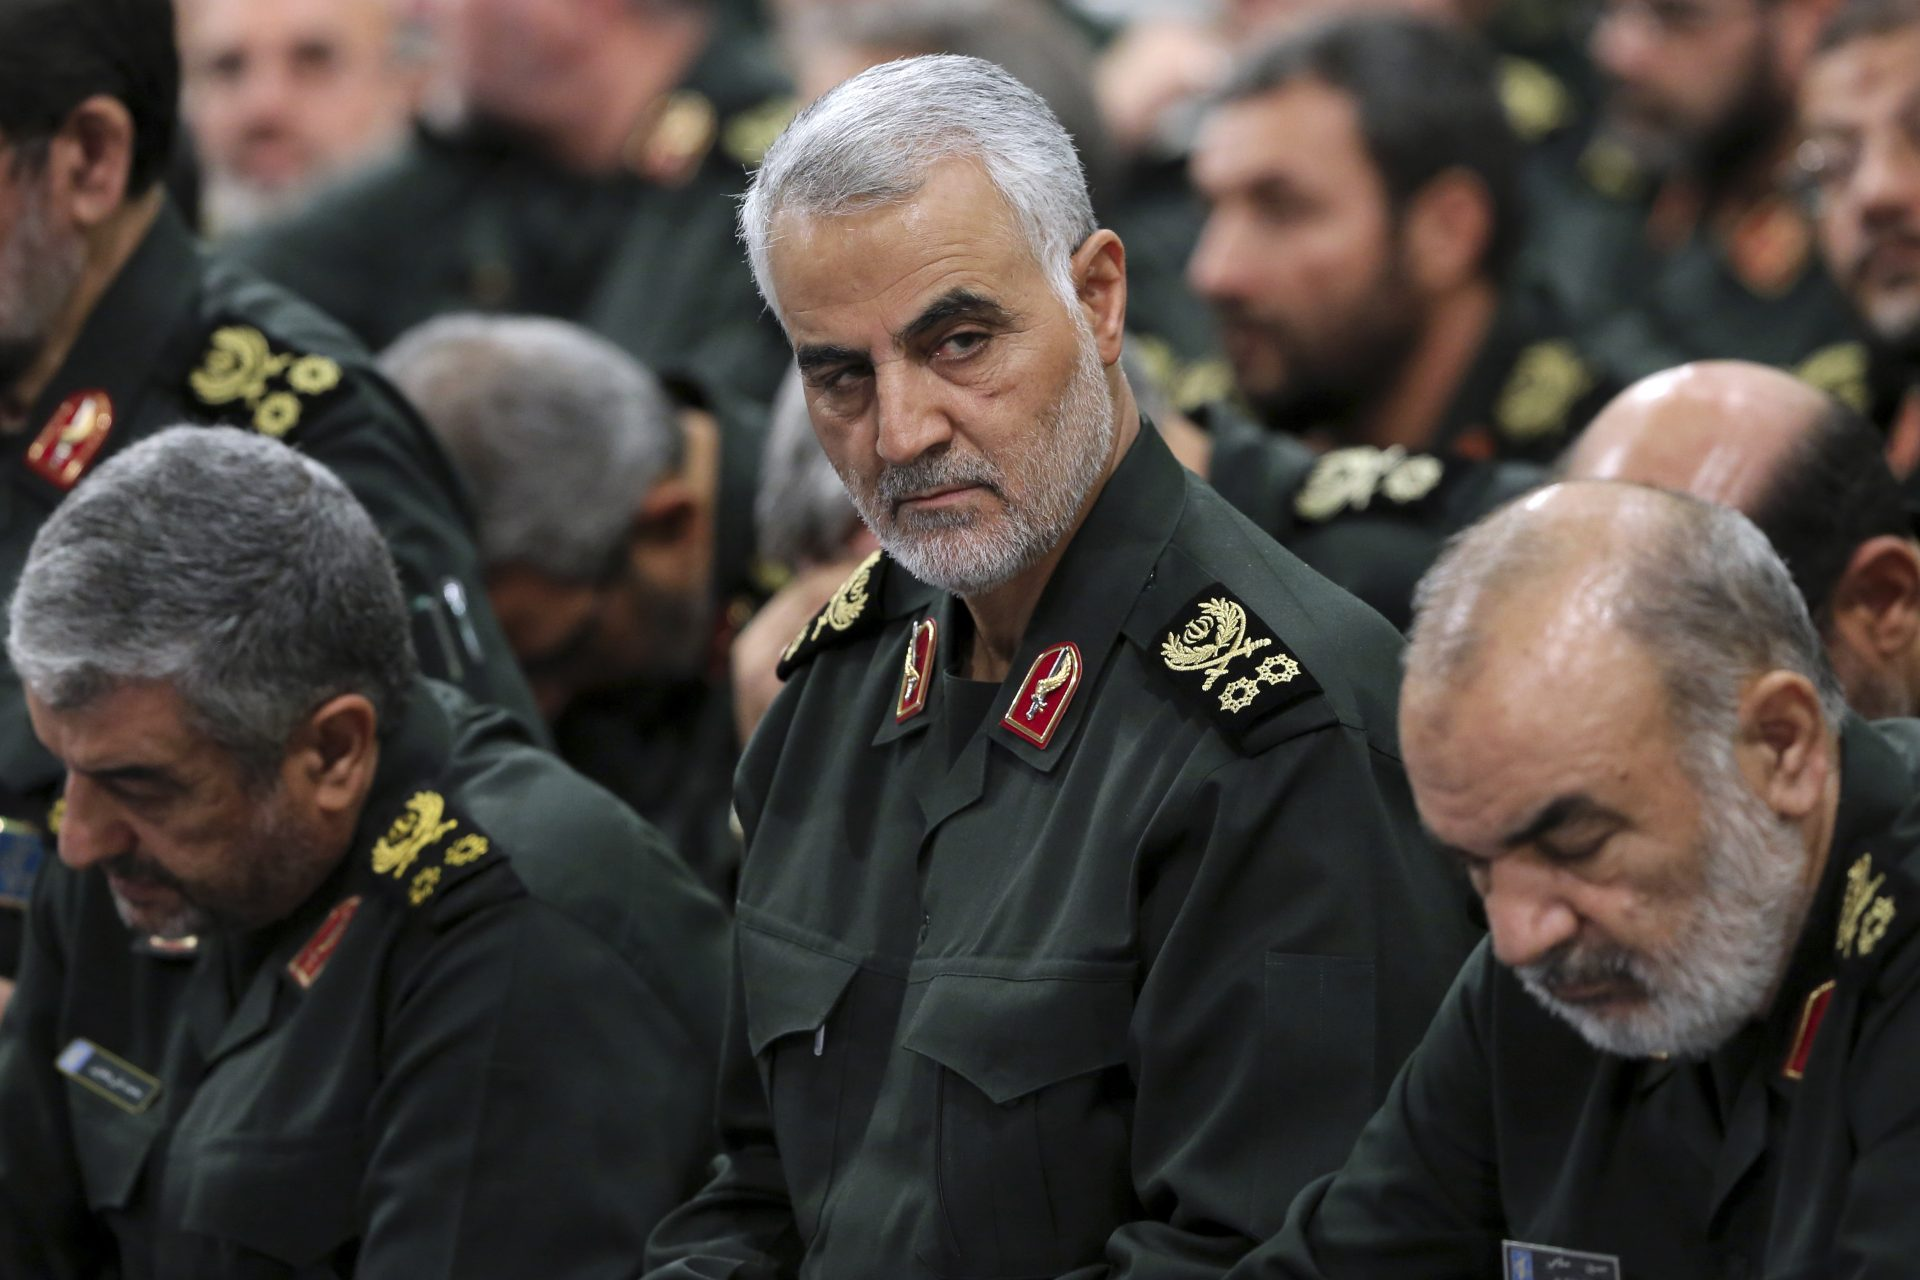 FILE PHOTO: In this Sept. 18, 2016 file photo released by an official website of the office of the Iranian supreme leader, Revolutionary Guard Gen. Qassem Soleimani, center, attends a meeting in Tehran, Iran. The long shadow war between Israel and Iran has burst into the open in recent days, with Israel allegedly striking Iran-linked targets as far away as Iraq and crash-landing two drones in Lebanon. These incidents, along with an air raid in Syria that Israel says thwarted an imminent Iranian drone attack, have raised tensions at a particularly fraught time. Israel said Soleimani masterminded the alleged drone attack.